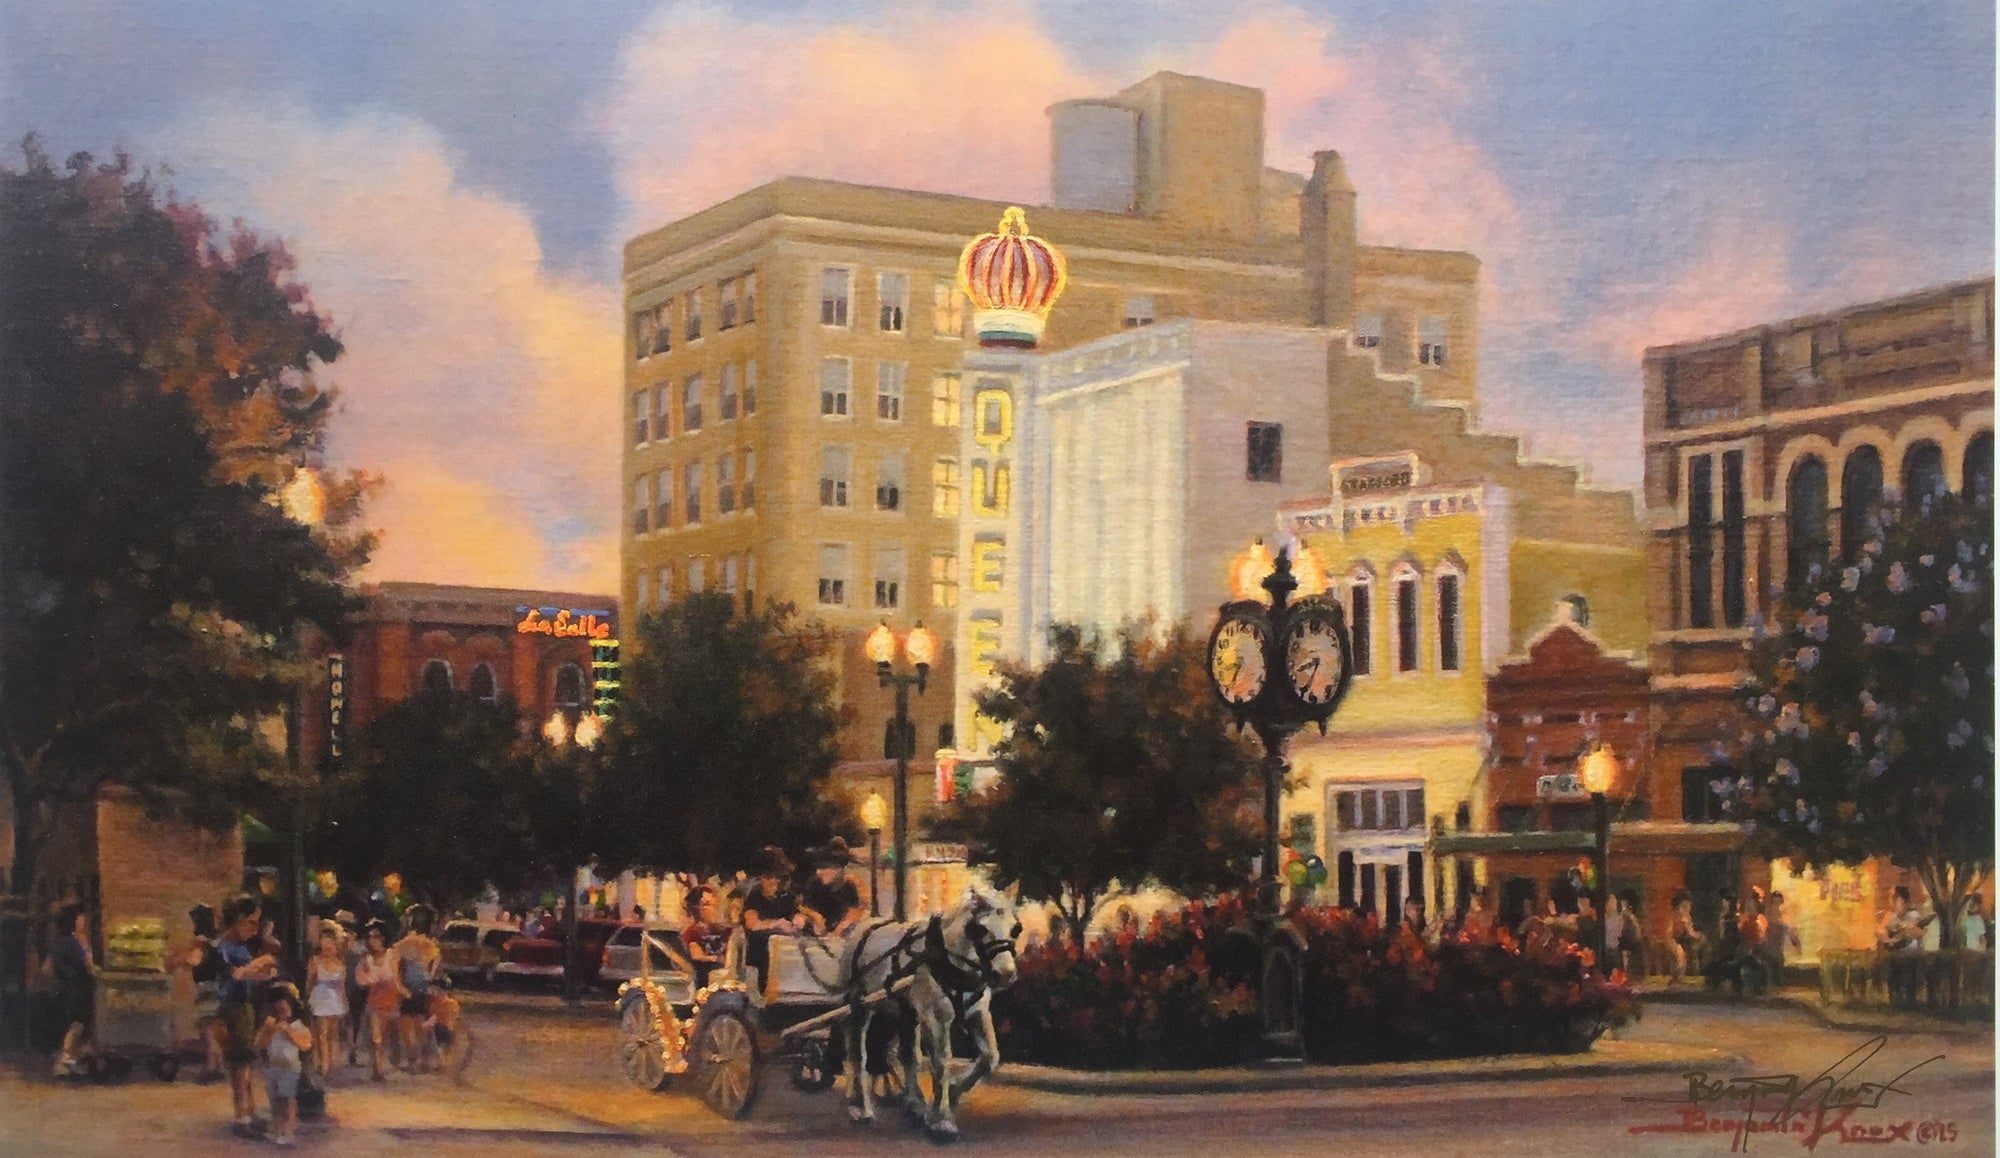 First Friday in Downtown Bryan - Print - Benjamin Knox Fine Art Gallery